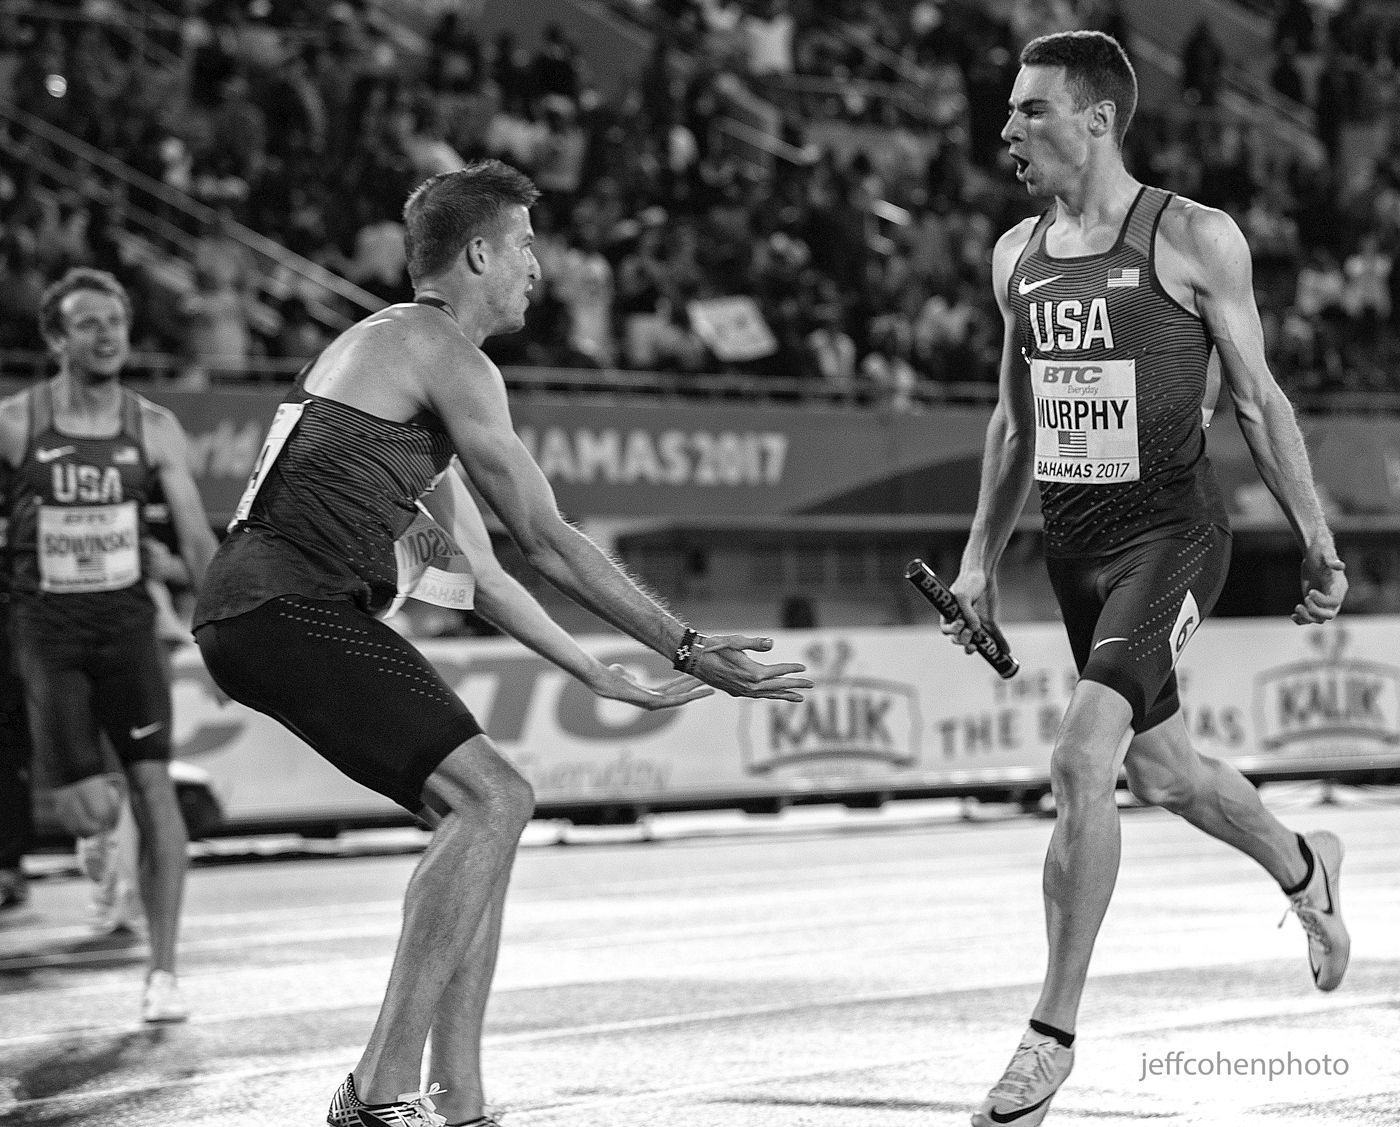 1r2017_bahamas_relays_day_2___loxom_murphy_celebrate_4x800_bw__jeff_cohen_photo__2430_web.jpg